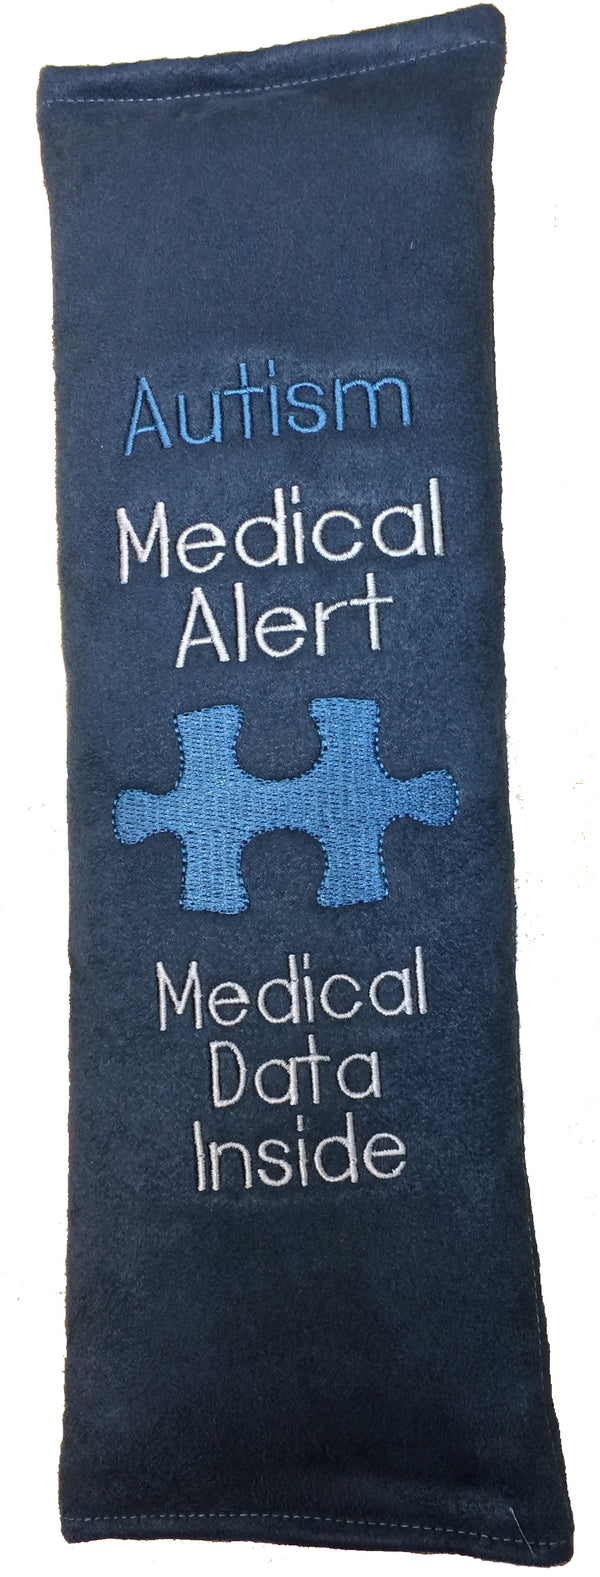 Medical Alert Seat Belt Cover